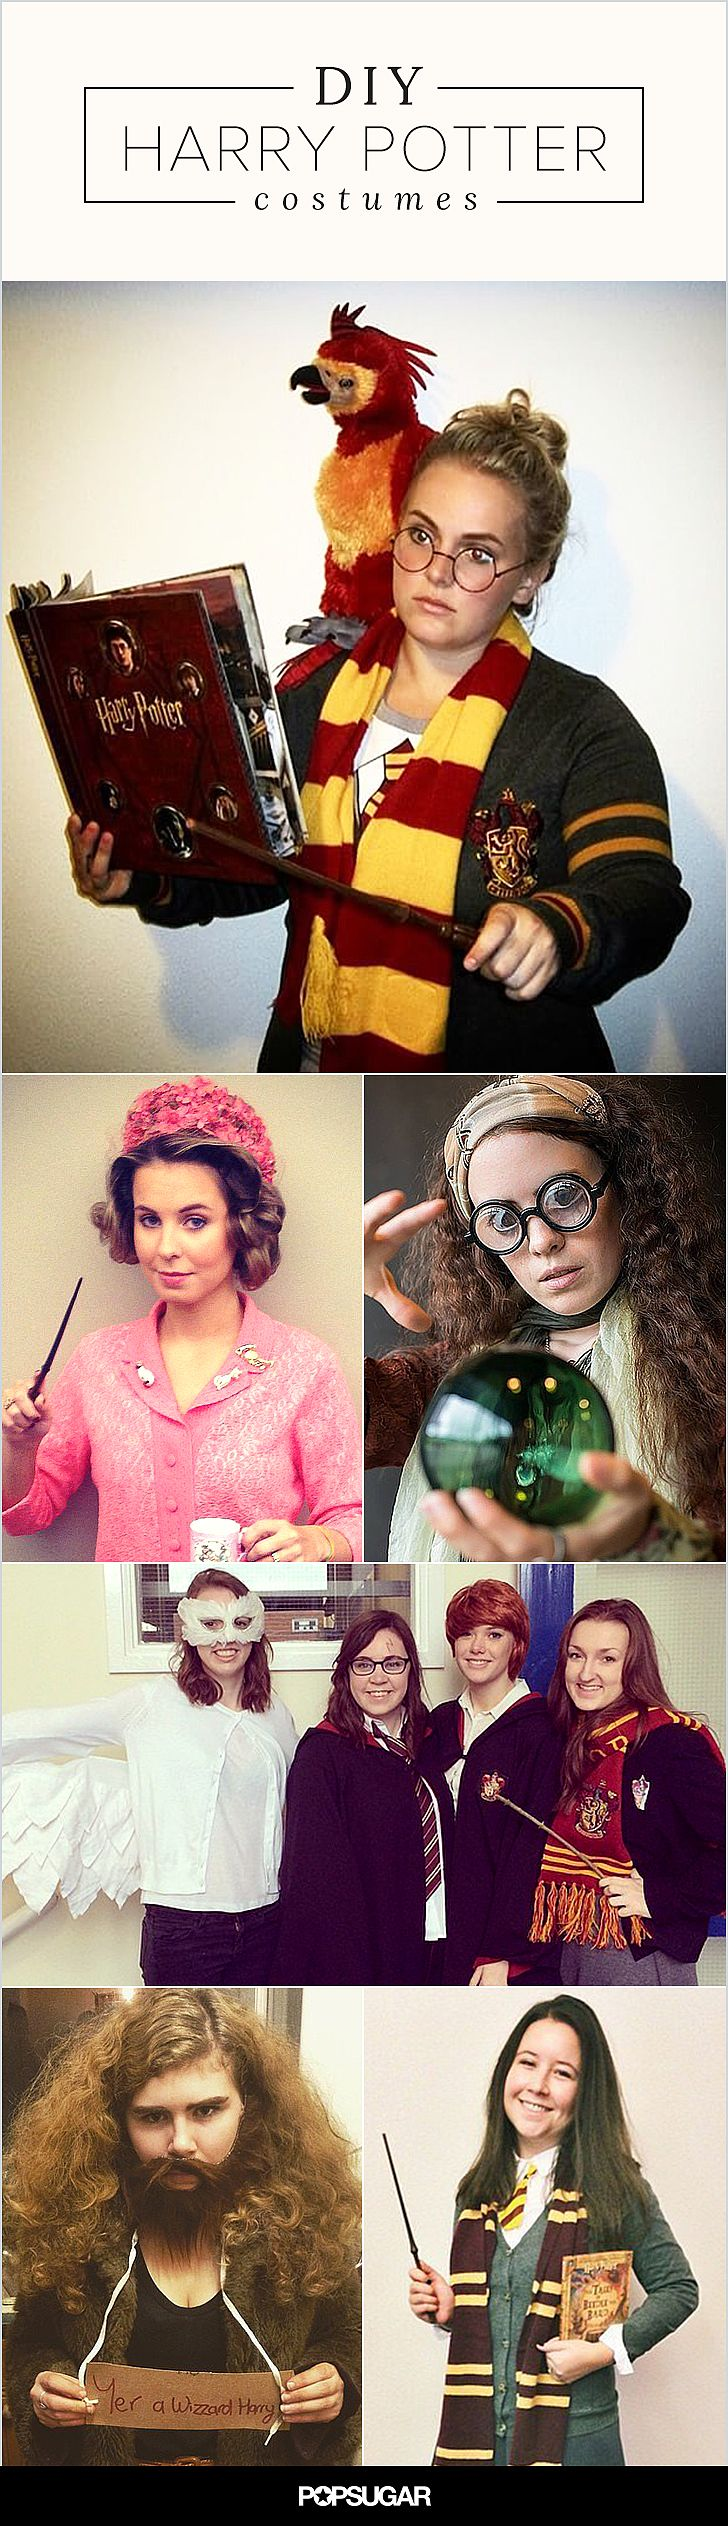 Magical Harry Potter costumes that are easy and cheap to make